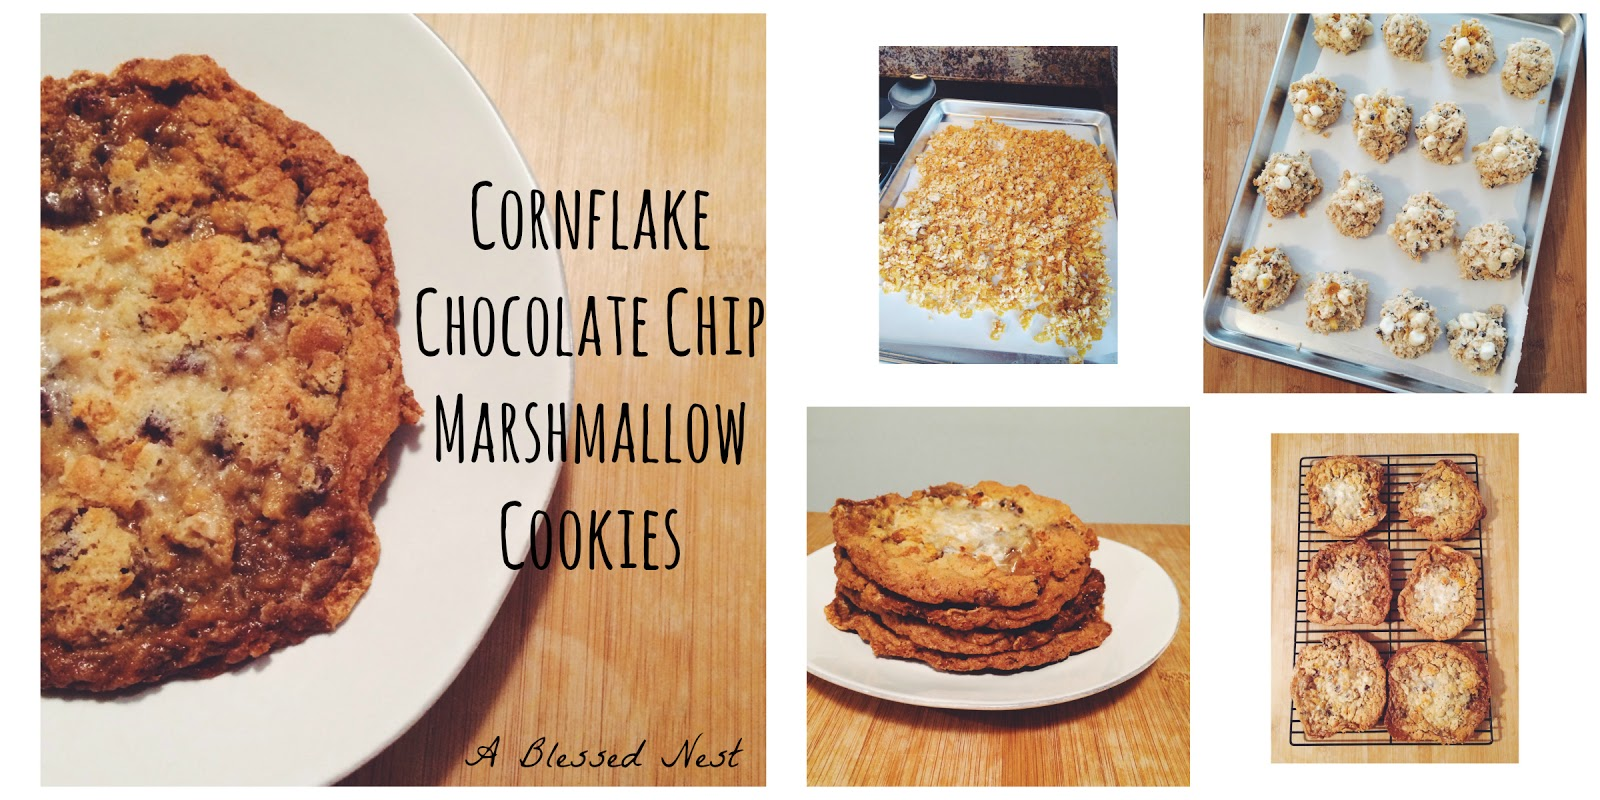 Blessed Nest: cornflake chocolate chip marshmallow cookies